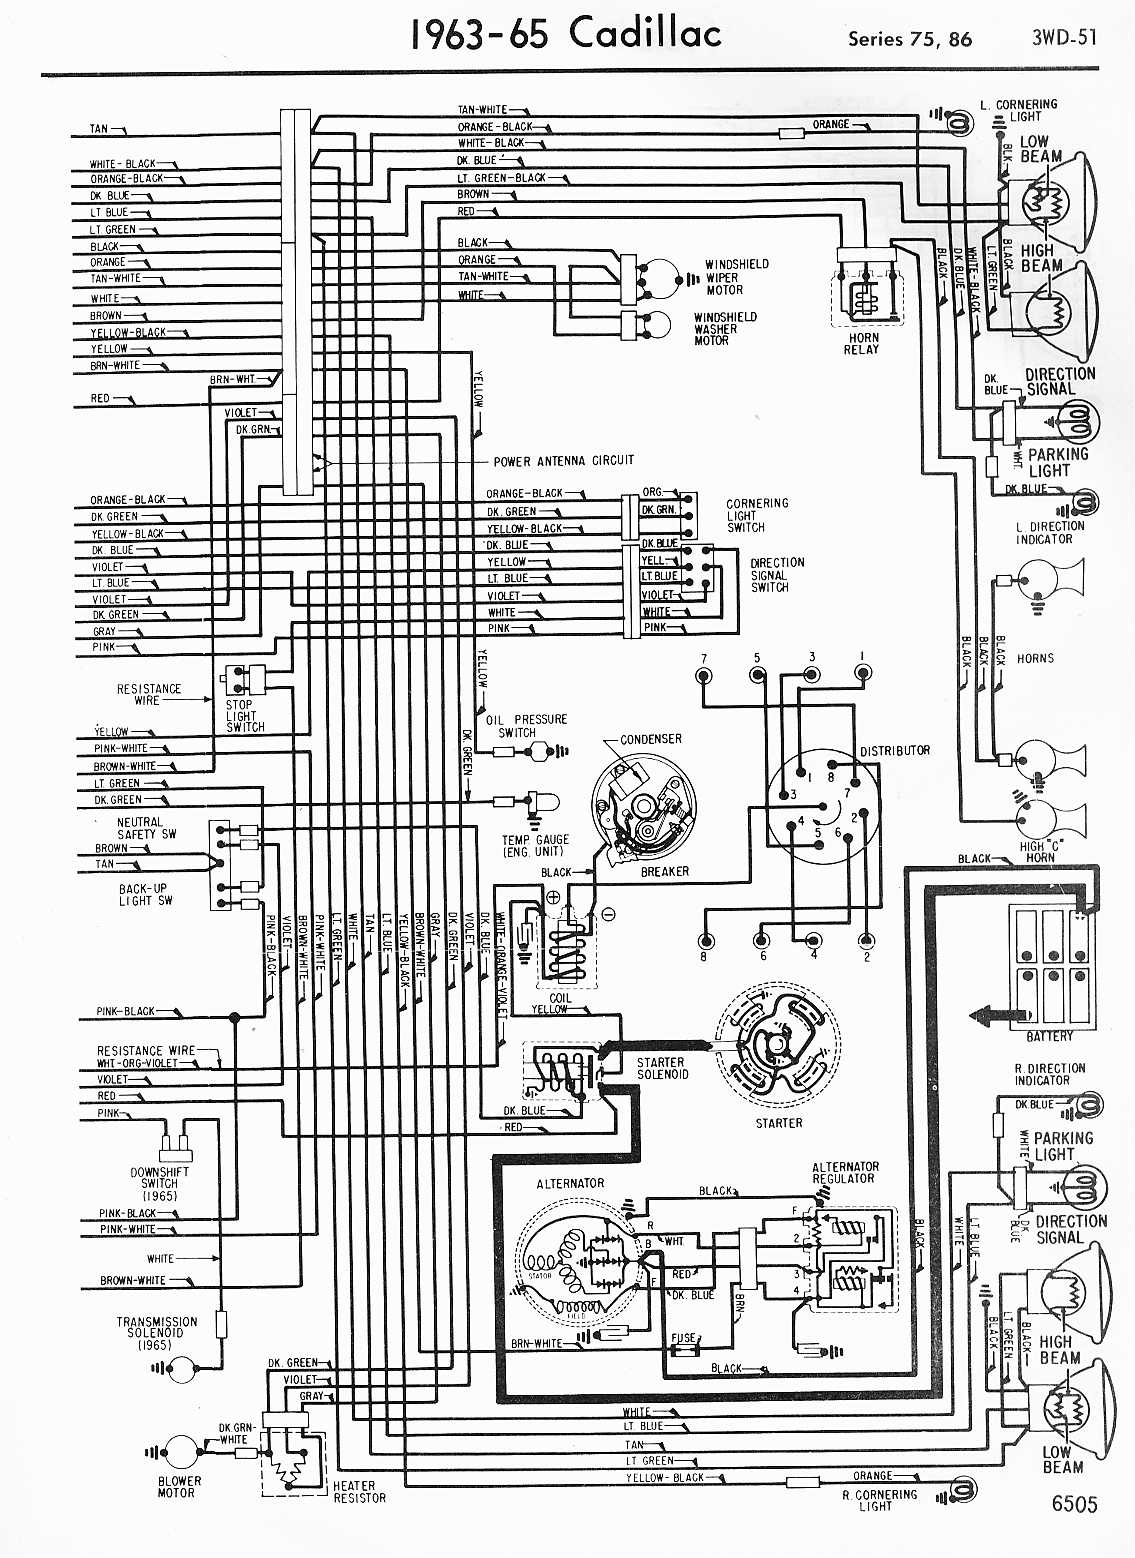 MWireCadi65_3WD 051 cadillac wiring diagrams 1957 1965  at soozxer.org